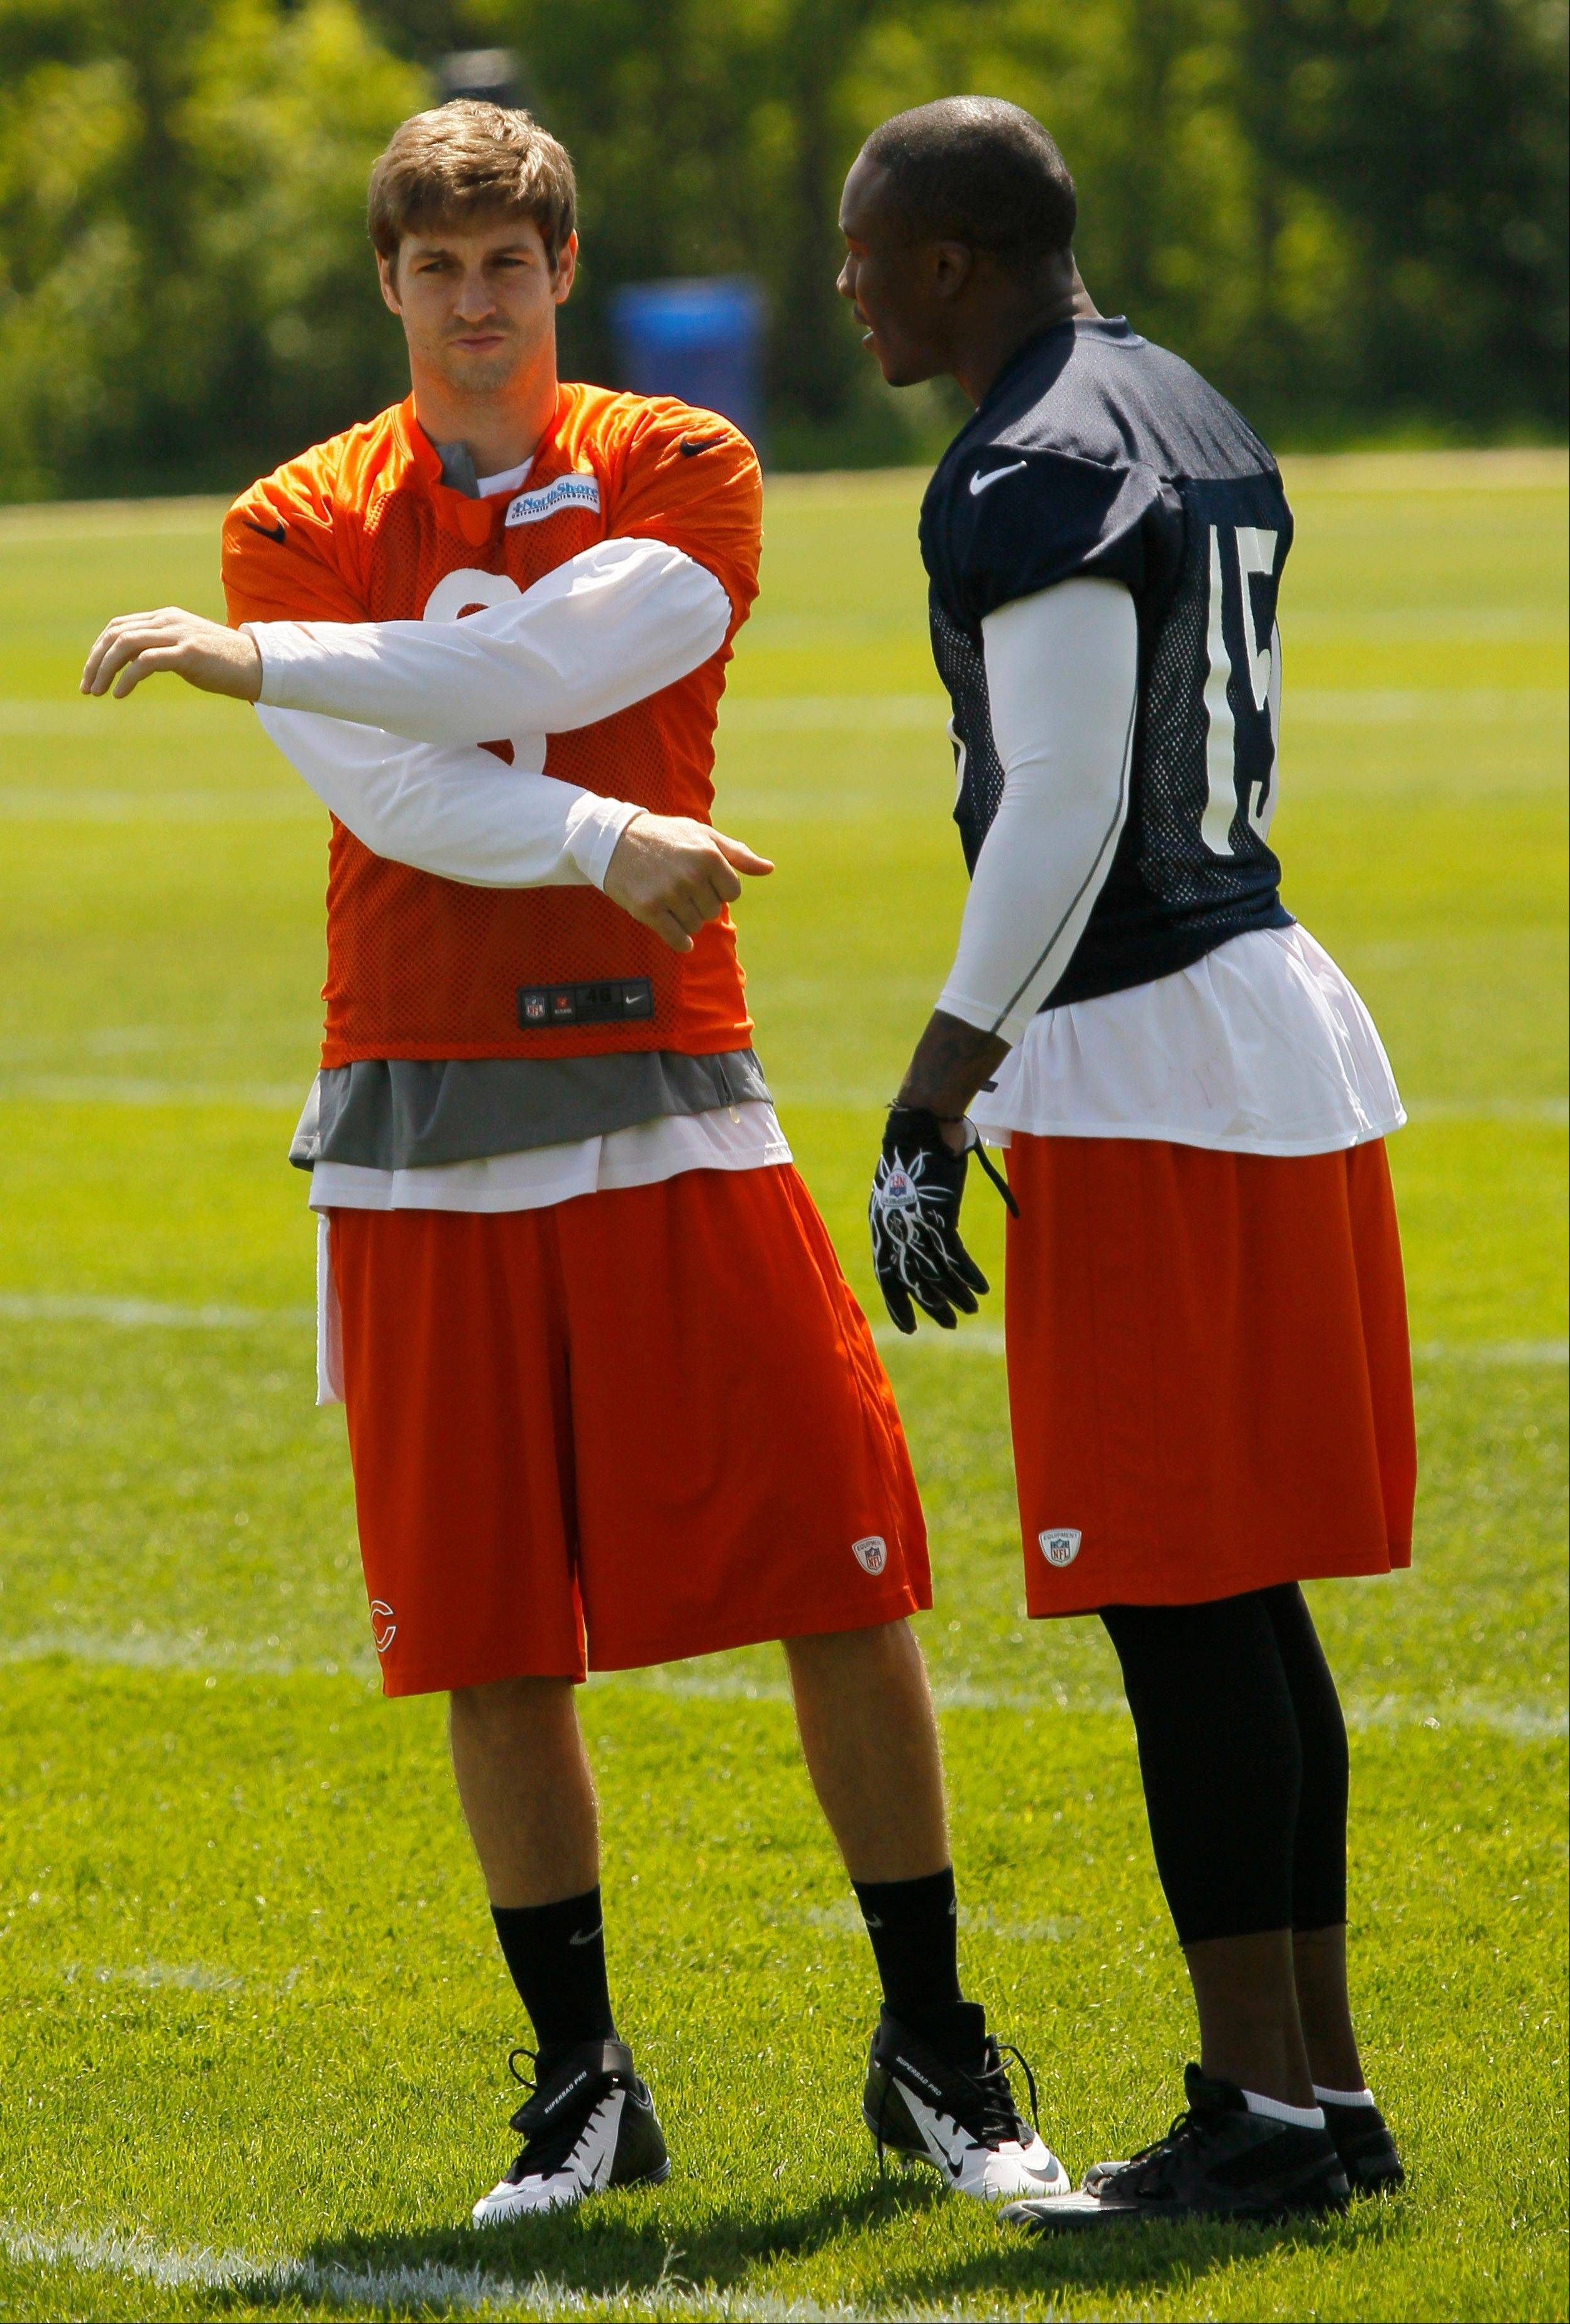 It�s a vastly improved offense now for Bears quarterback Jay Cutler, left, with the addition of wide receiver Brandon Marshall. But some of the preseason expectations for the team might be a bit over the top.